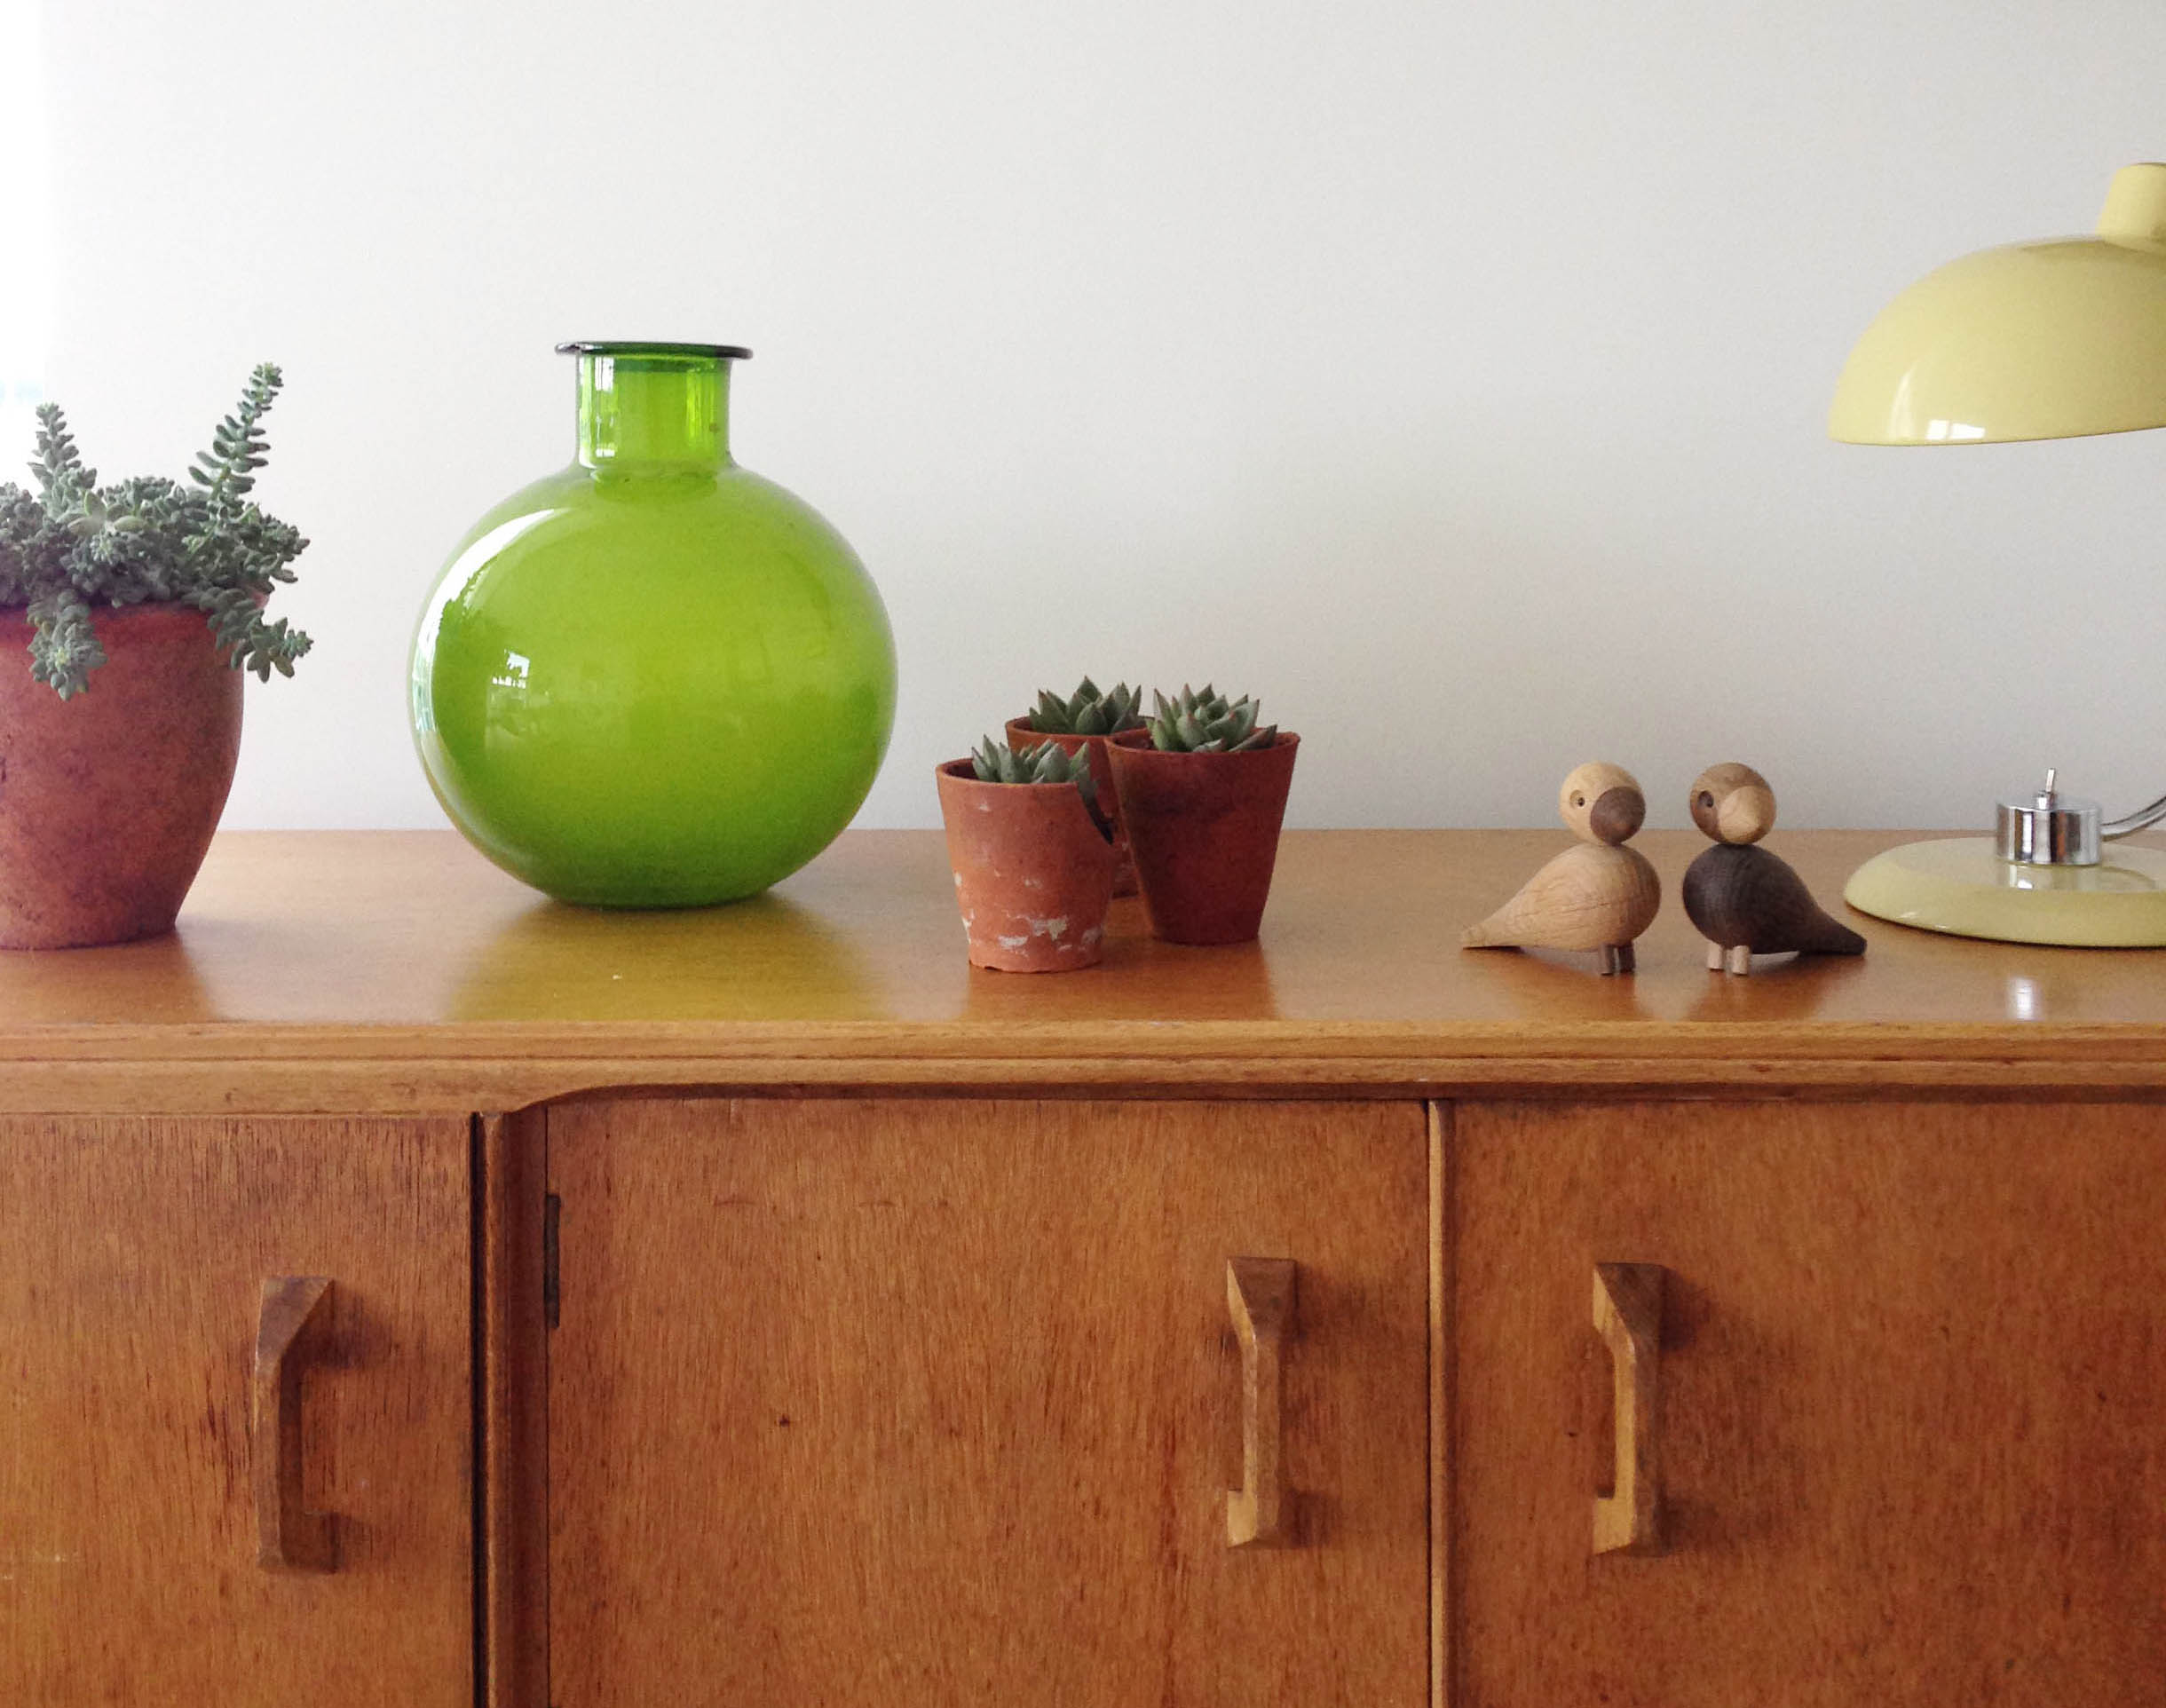 Selling homewares on eBay tips | Mid century sideboard | G-plan sideboard | Retro furniture | Apartment Apothecary